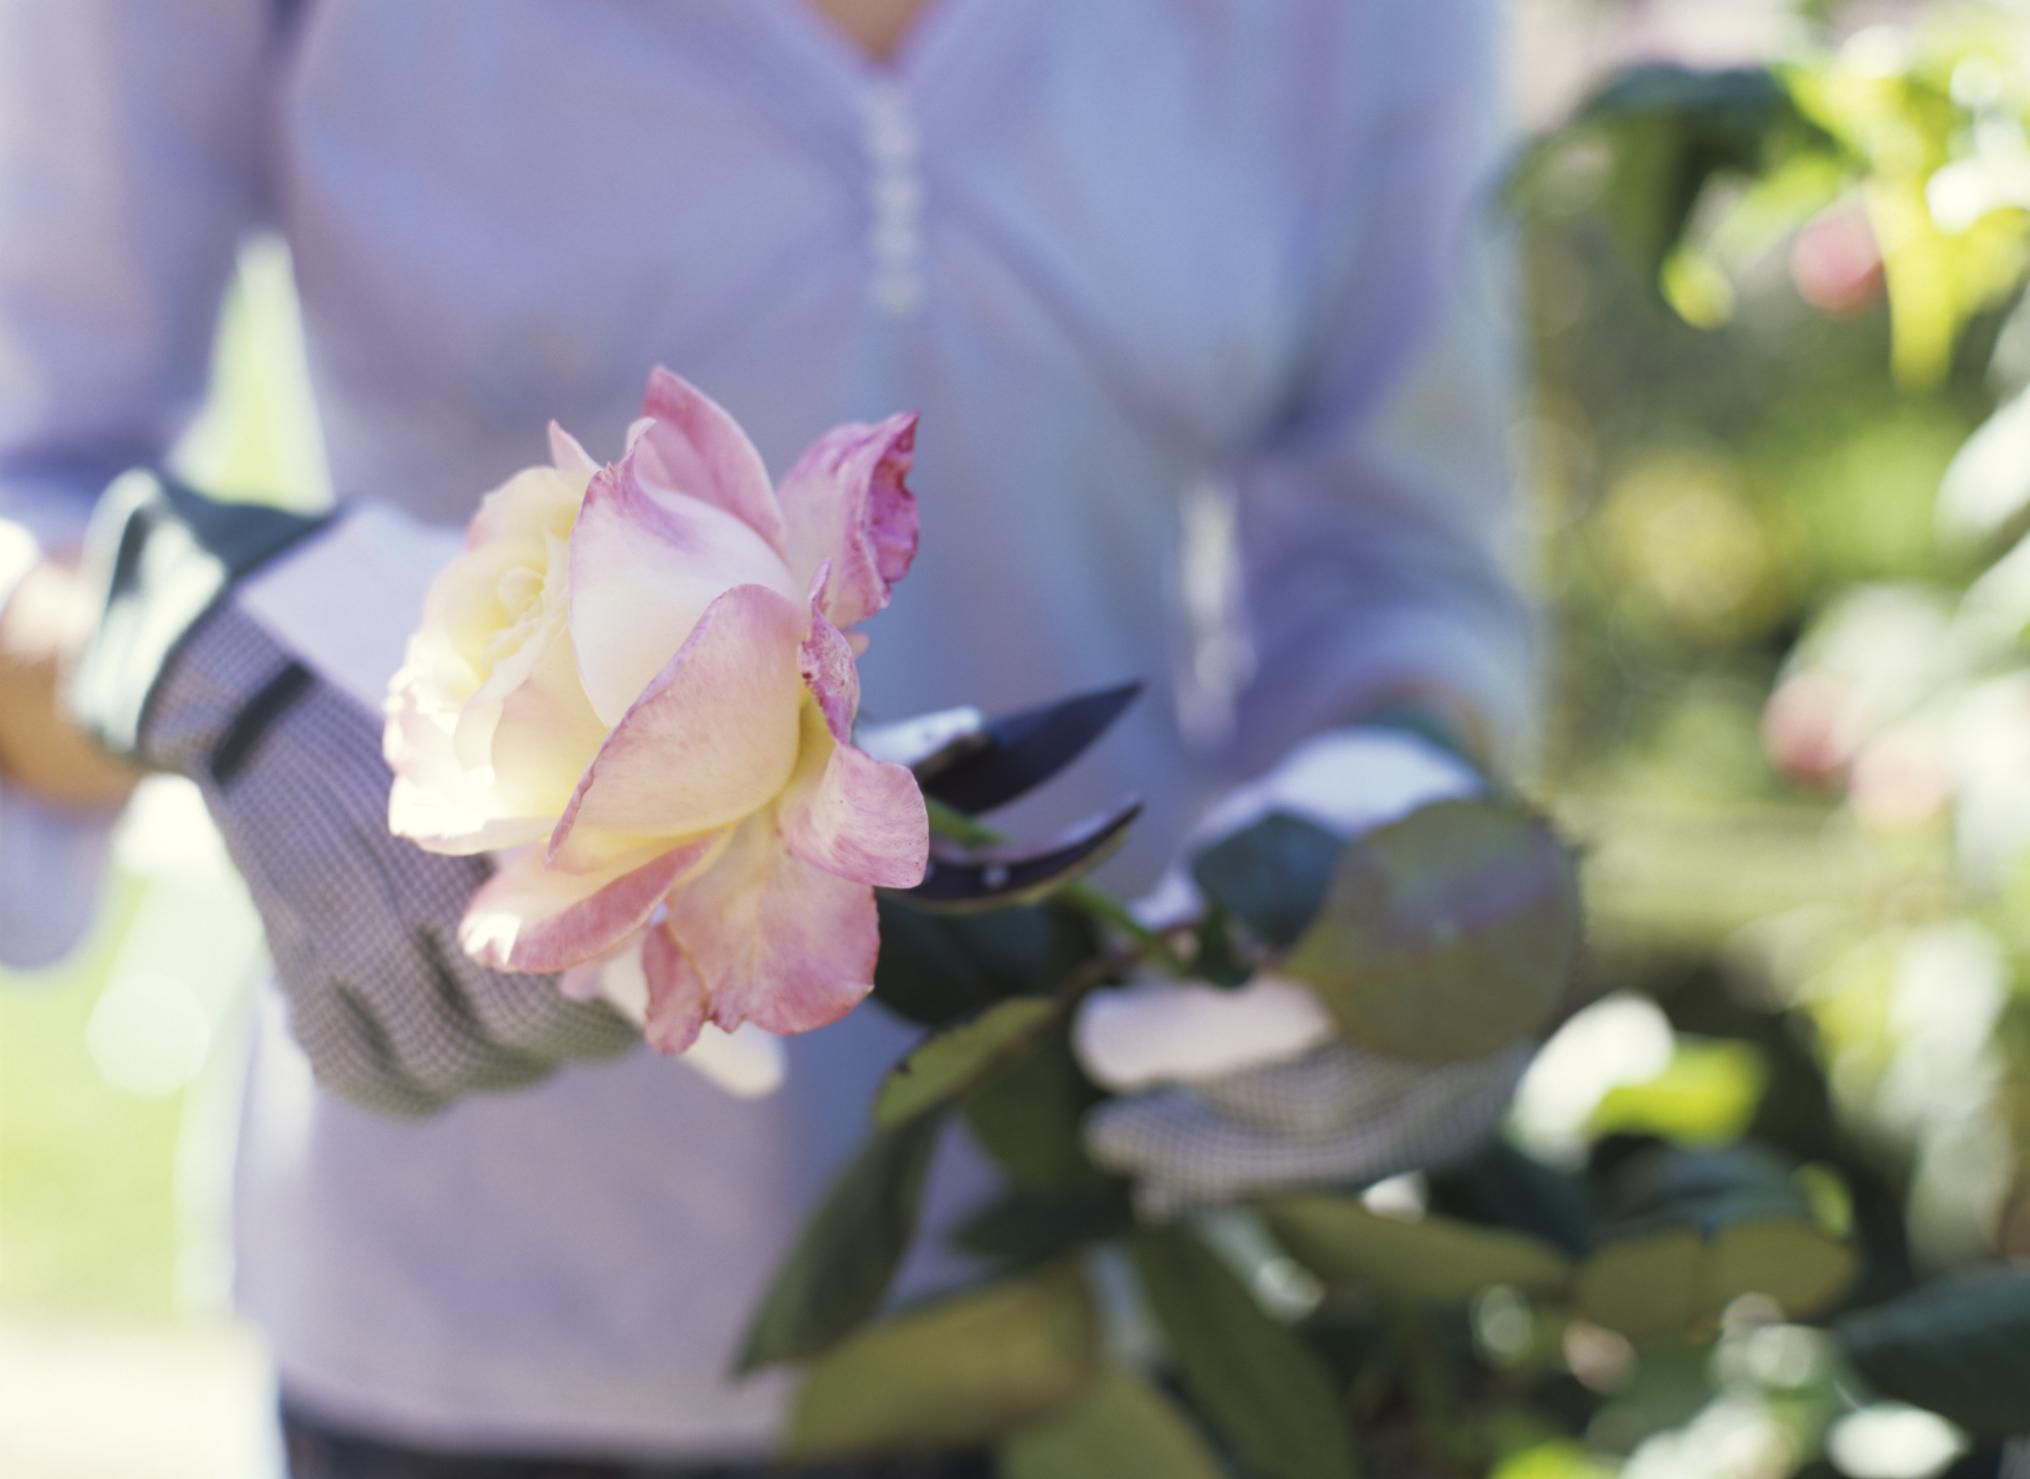 How To Harvest And Dry Rose Petals